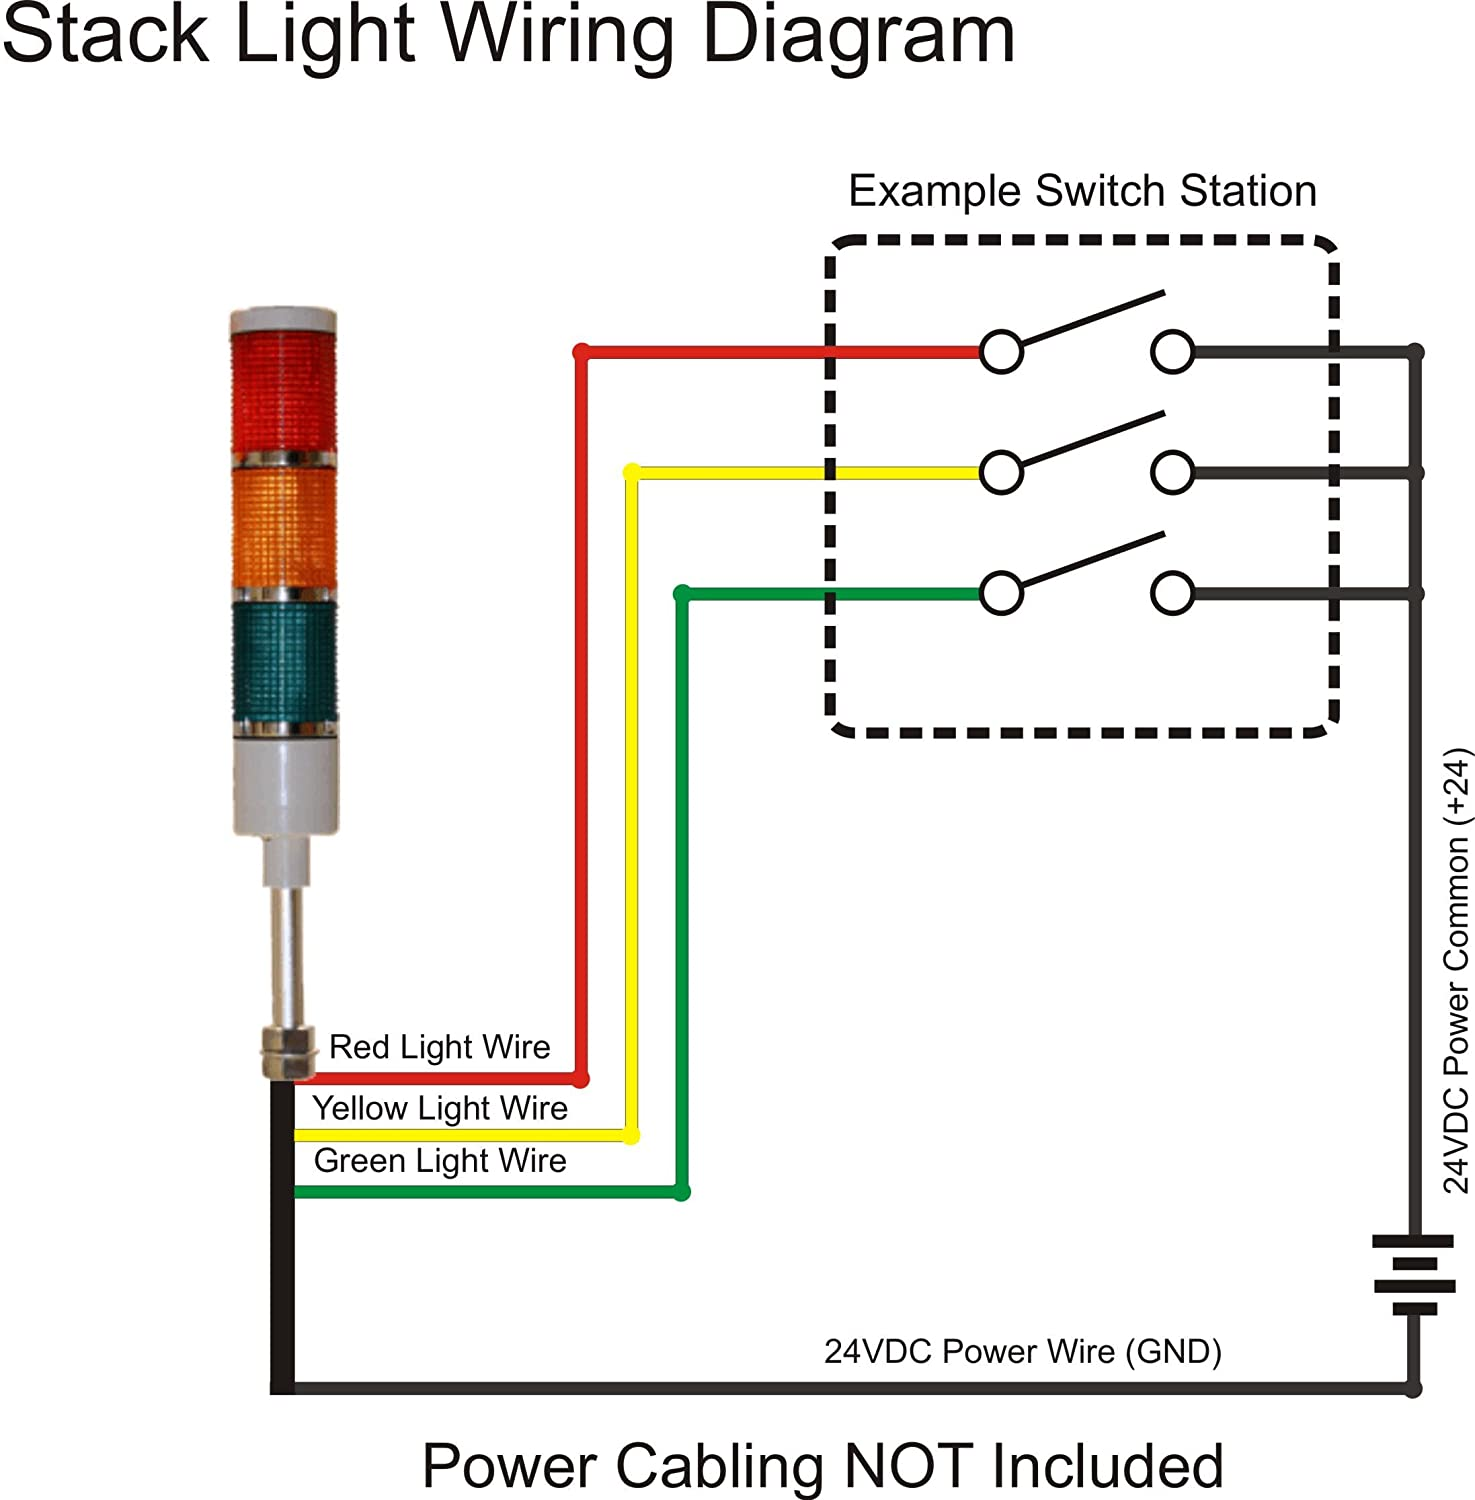 Abb Stack Light Wiring Diagram For Switch Portal U2022 Rh Getcircuitdiagram Today 855t